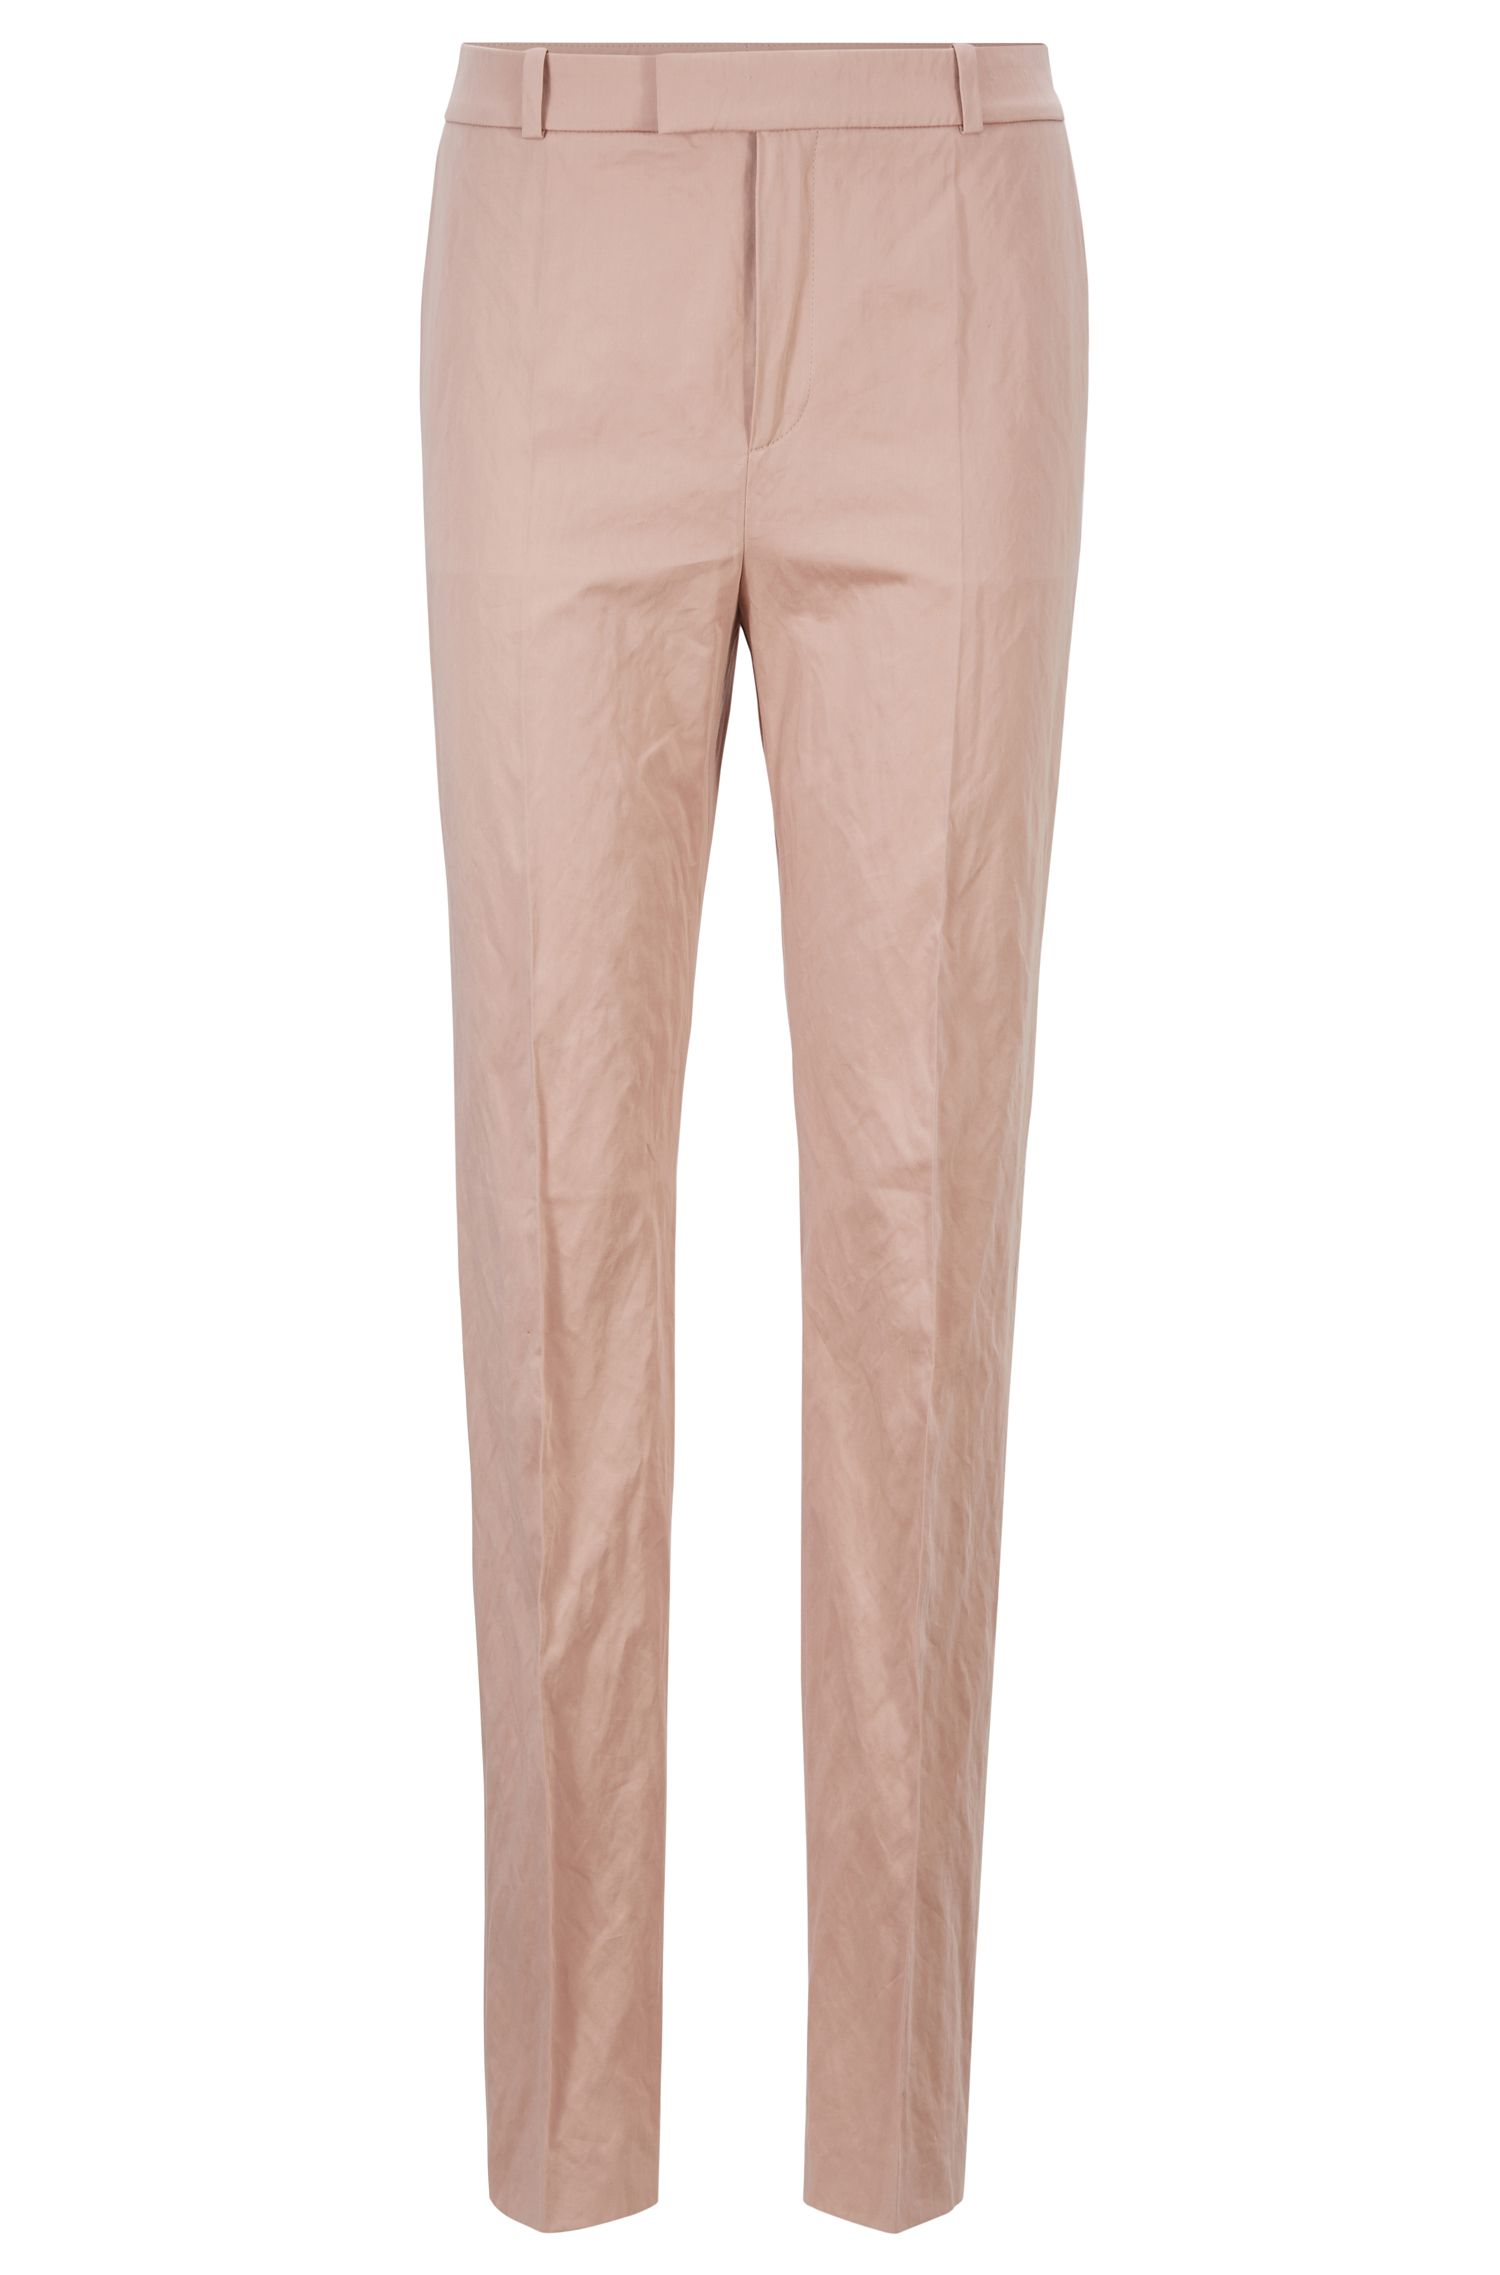 Fashion Show regular-fit pants in a lustrous cotton blend, light pink